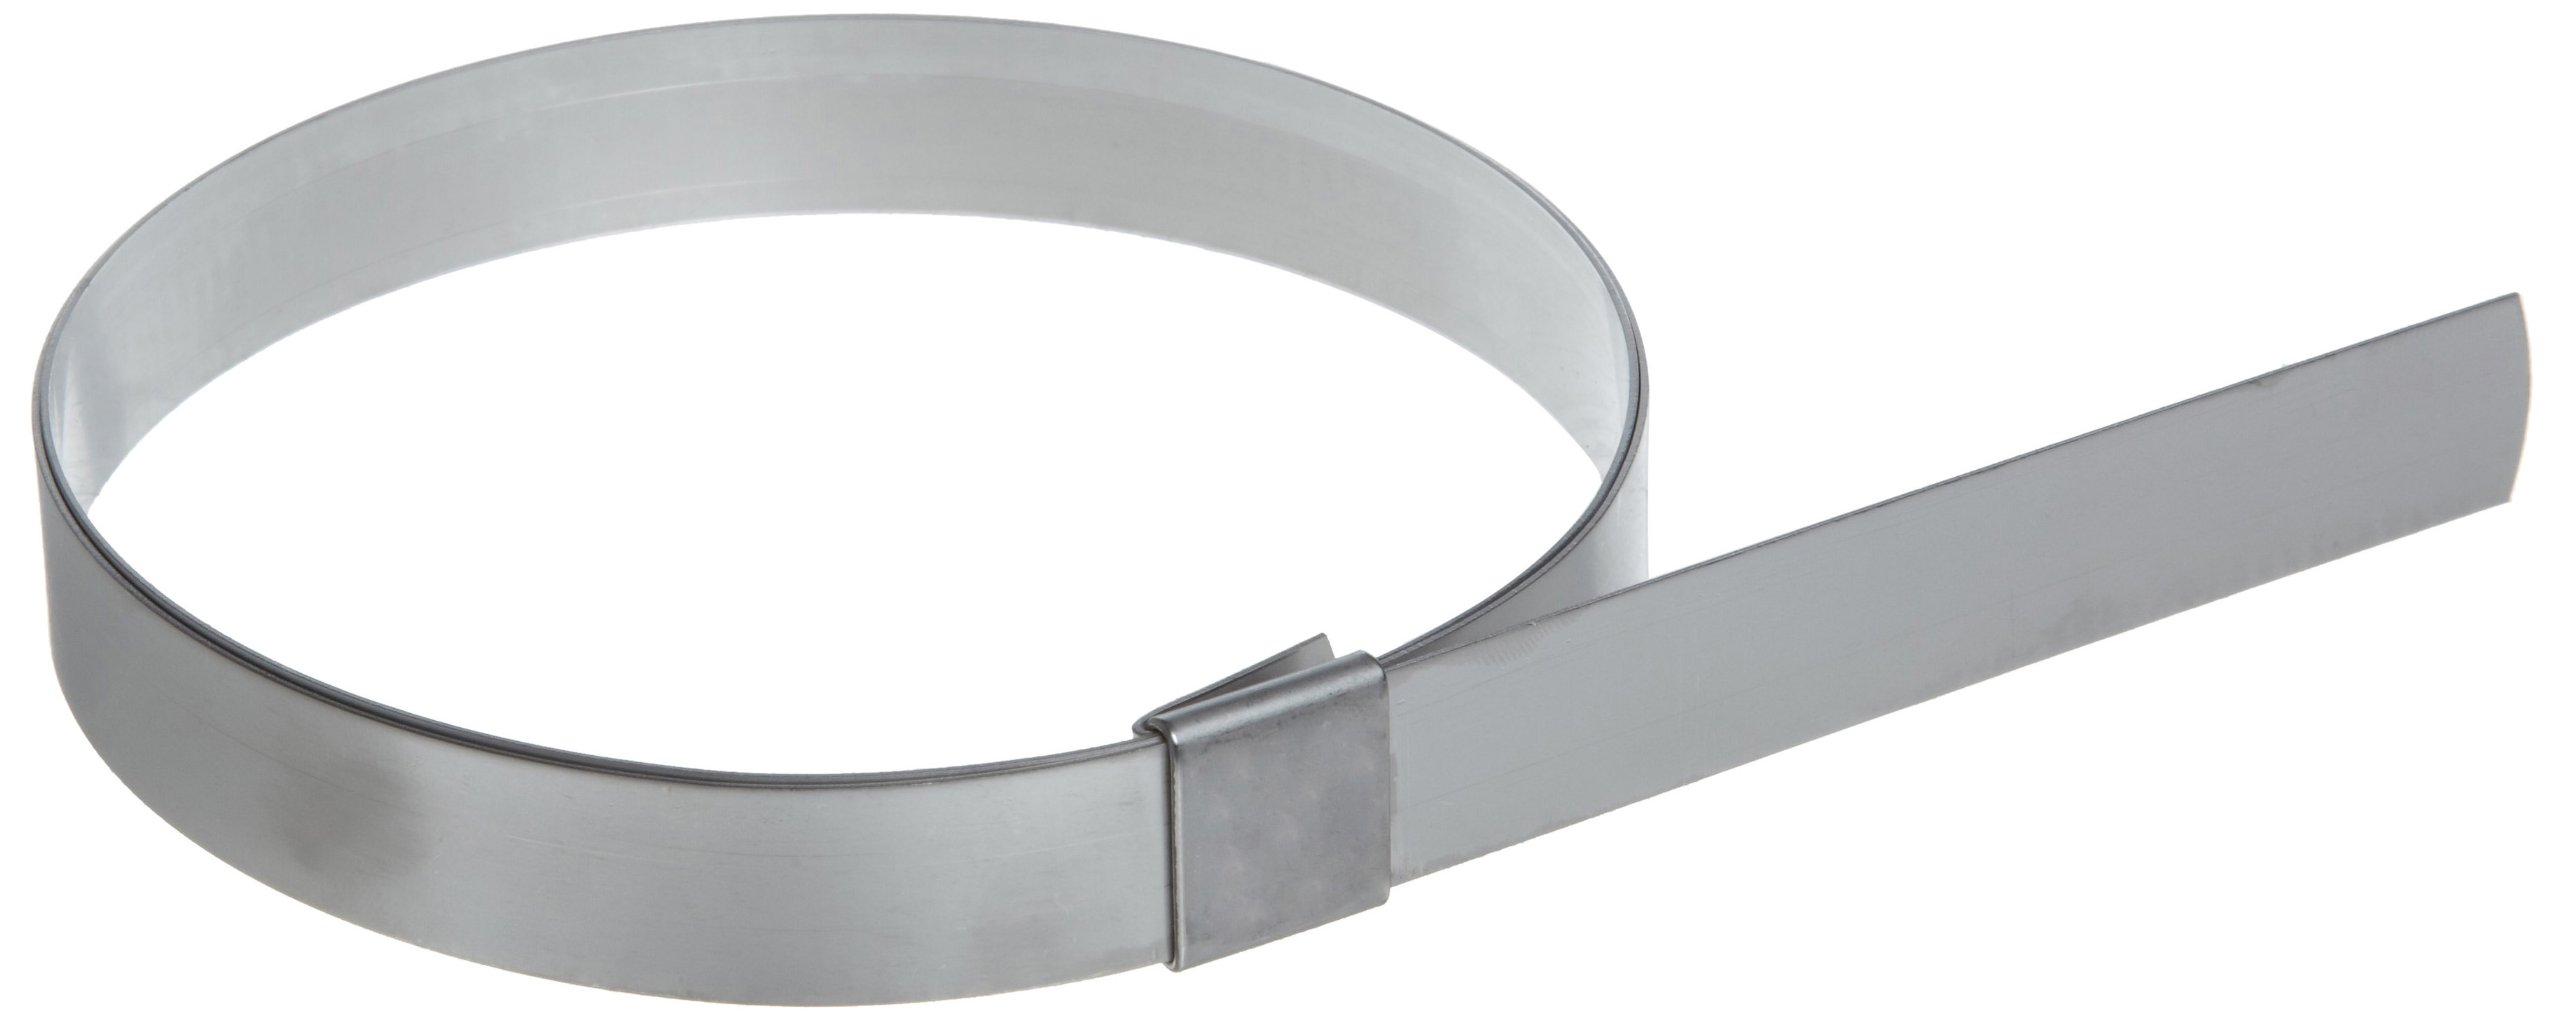 BAND-IT CP28S9 5/8'' Wide x 0.025'' Thick 7'' Diameter, 201 Stainless Steel Center Punch Clamp (25 Per Box)